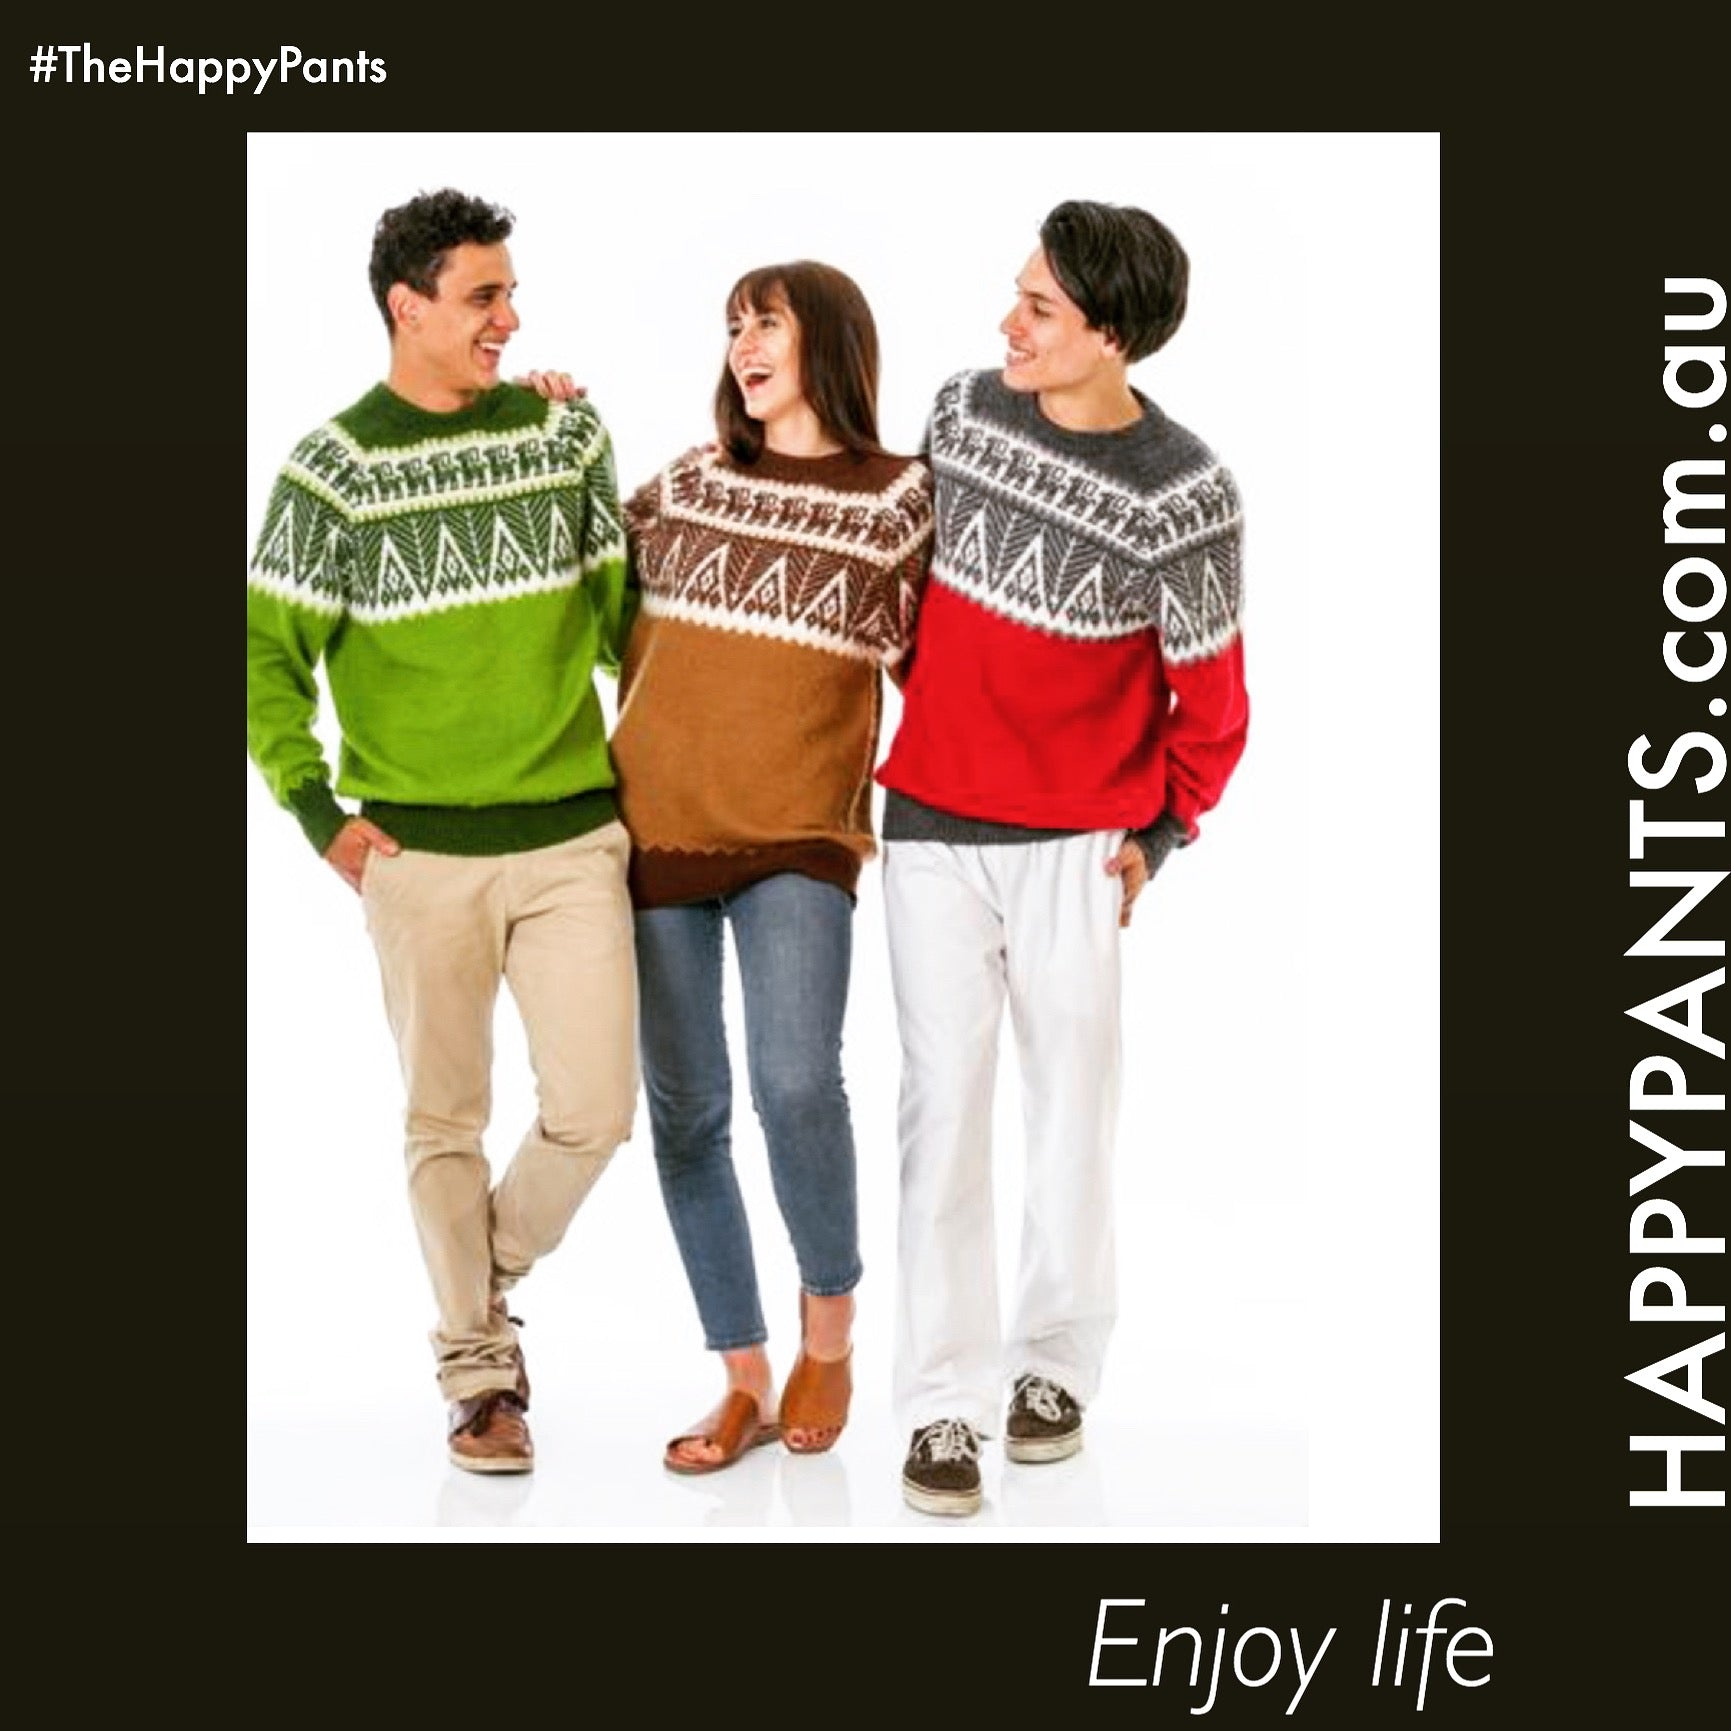 Enjoy Life with Happy Pants